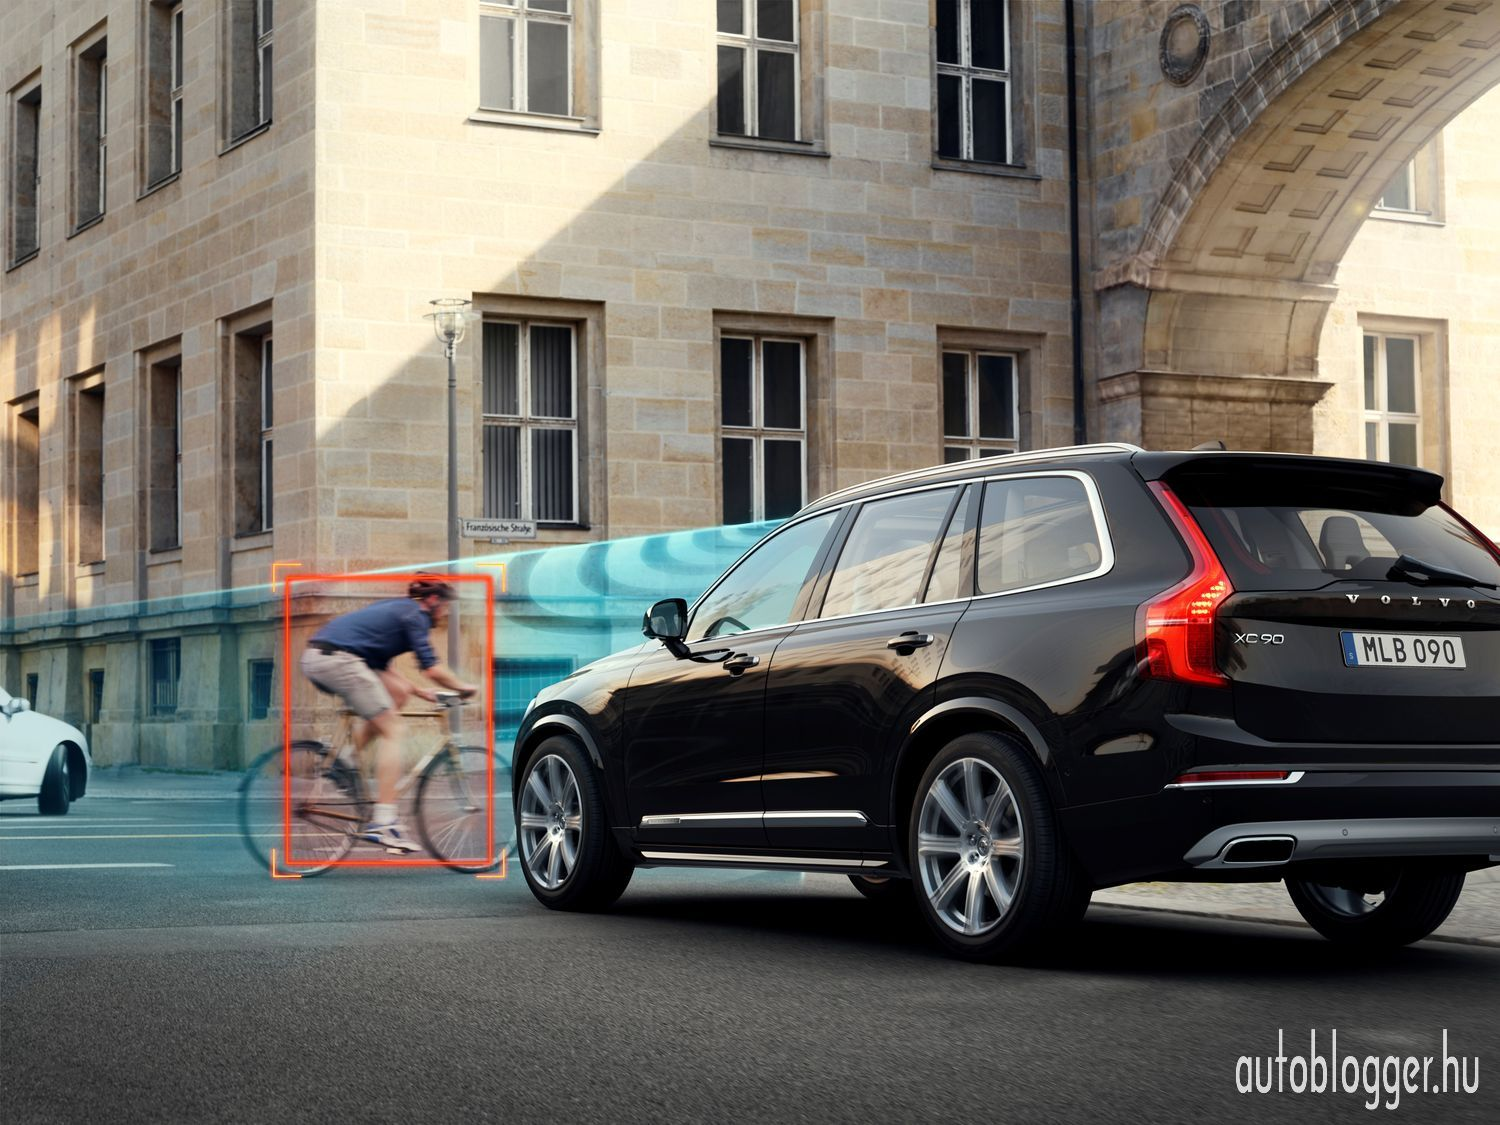 The all-new Volvo XC90 - Cyclist Detection